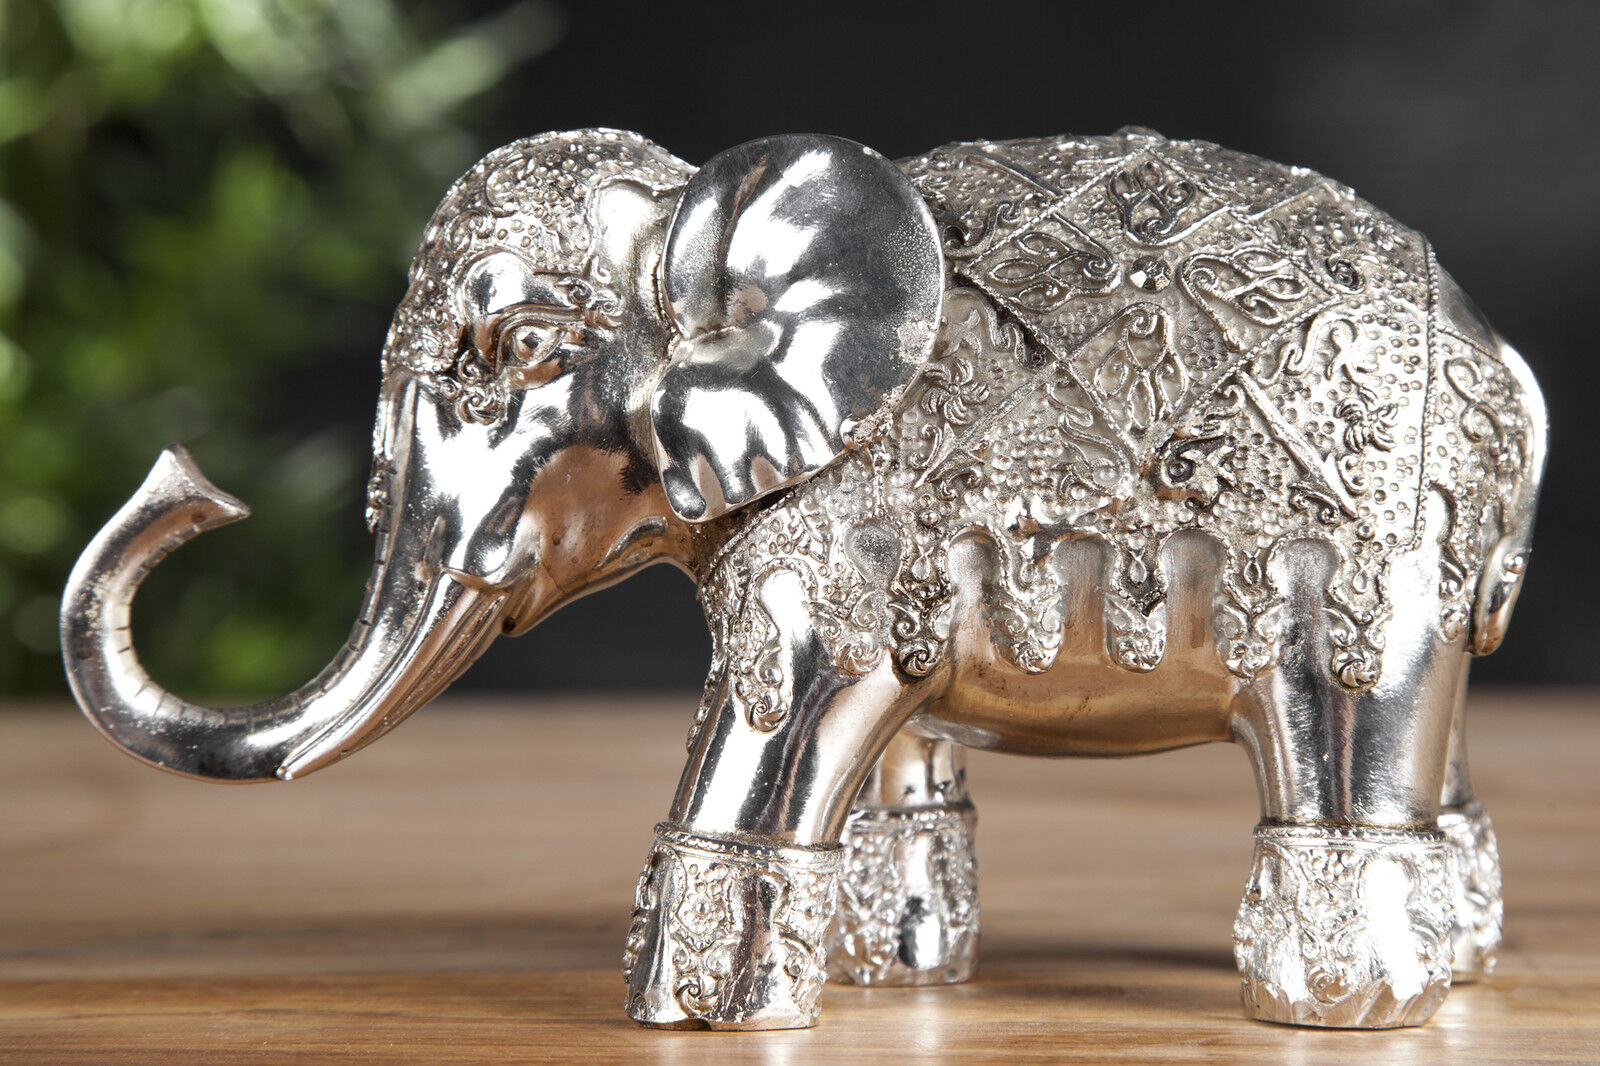 deko skulptur elefant in silber gr e 13cm x 7cm x 22cm hxbxt neu eur 14 90 picclick de. Black Bedroom Furniture Sets. Home Design Ideas